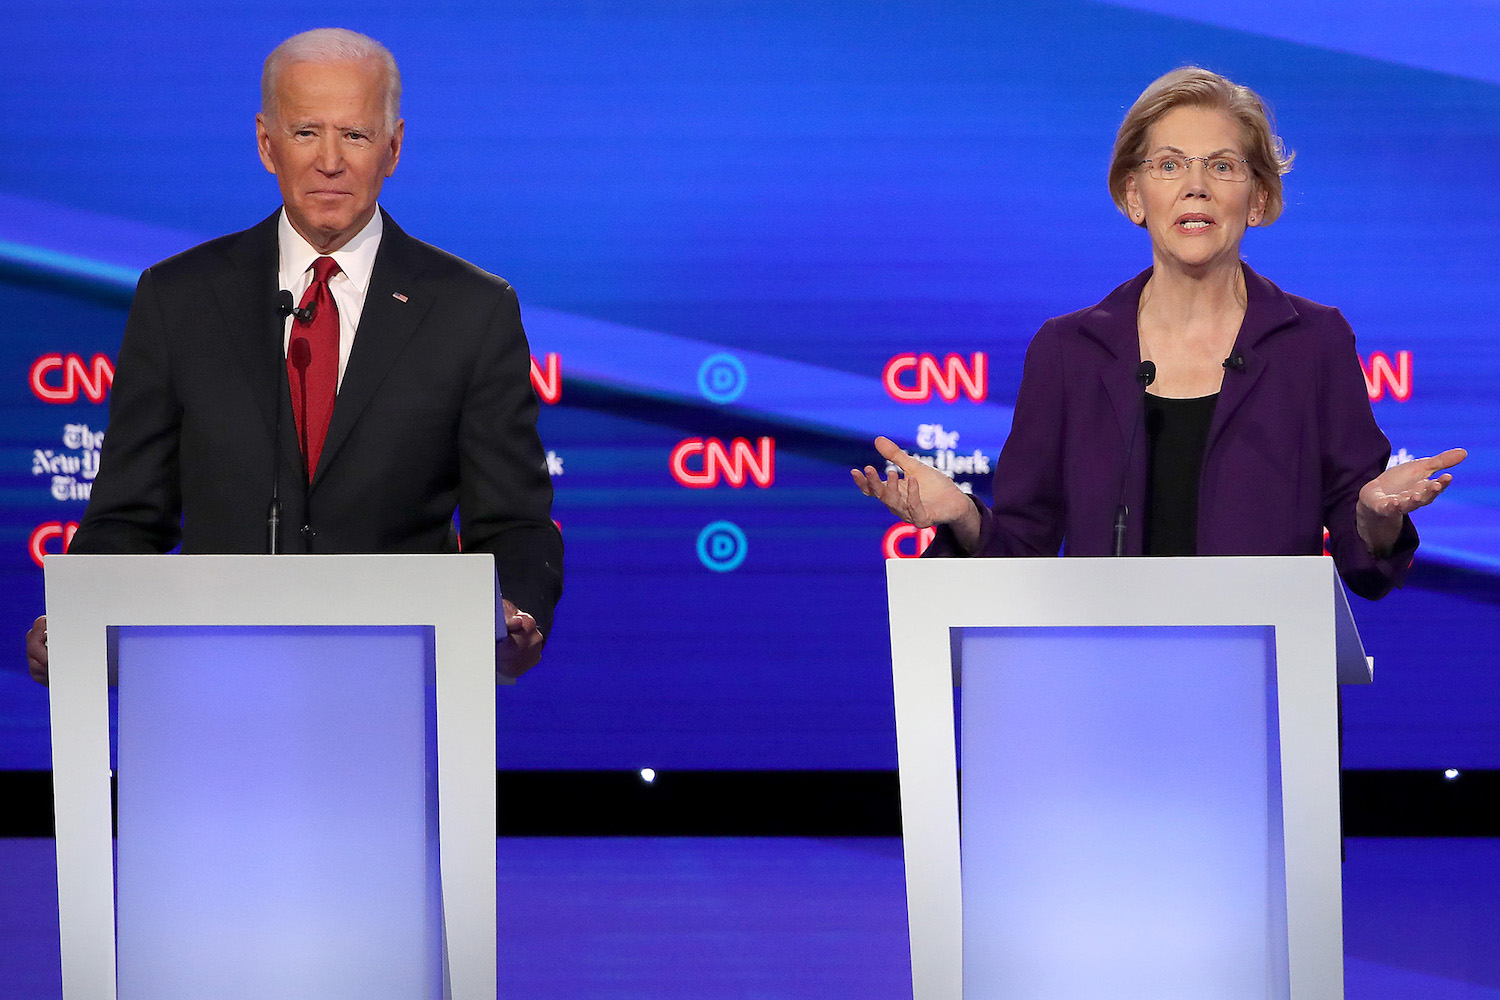 Former Vice President Joe Biden and Sen. Elizabeth Warren (D-Mass.) during the Democratic Presidential Debate at Otterbein University on Tuesday, Oct. 15, 2019, in Westerville, Ohio. (Win McNamee/Getty Images/TNS)